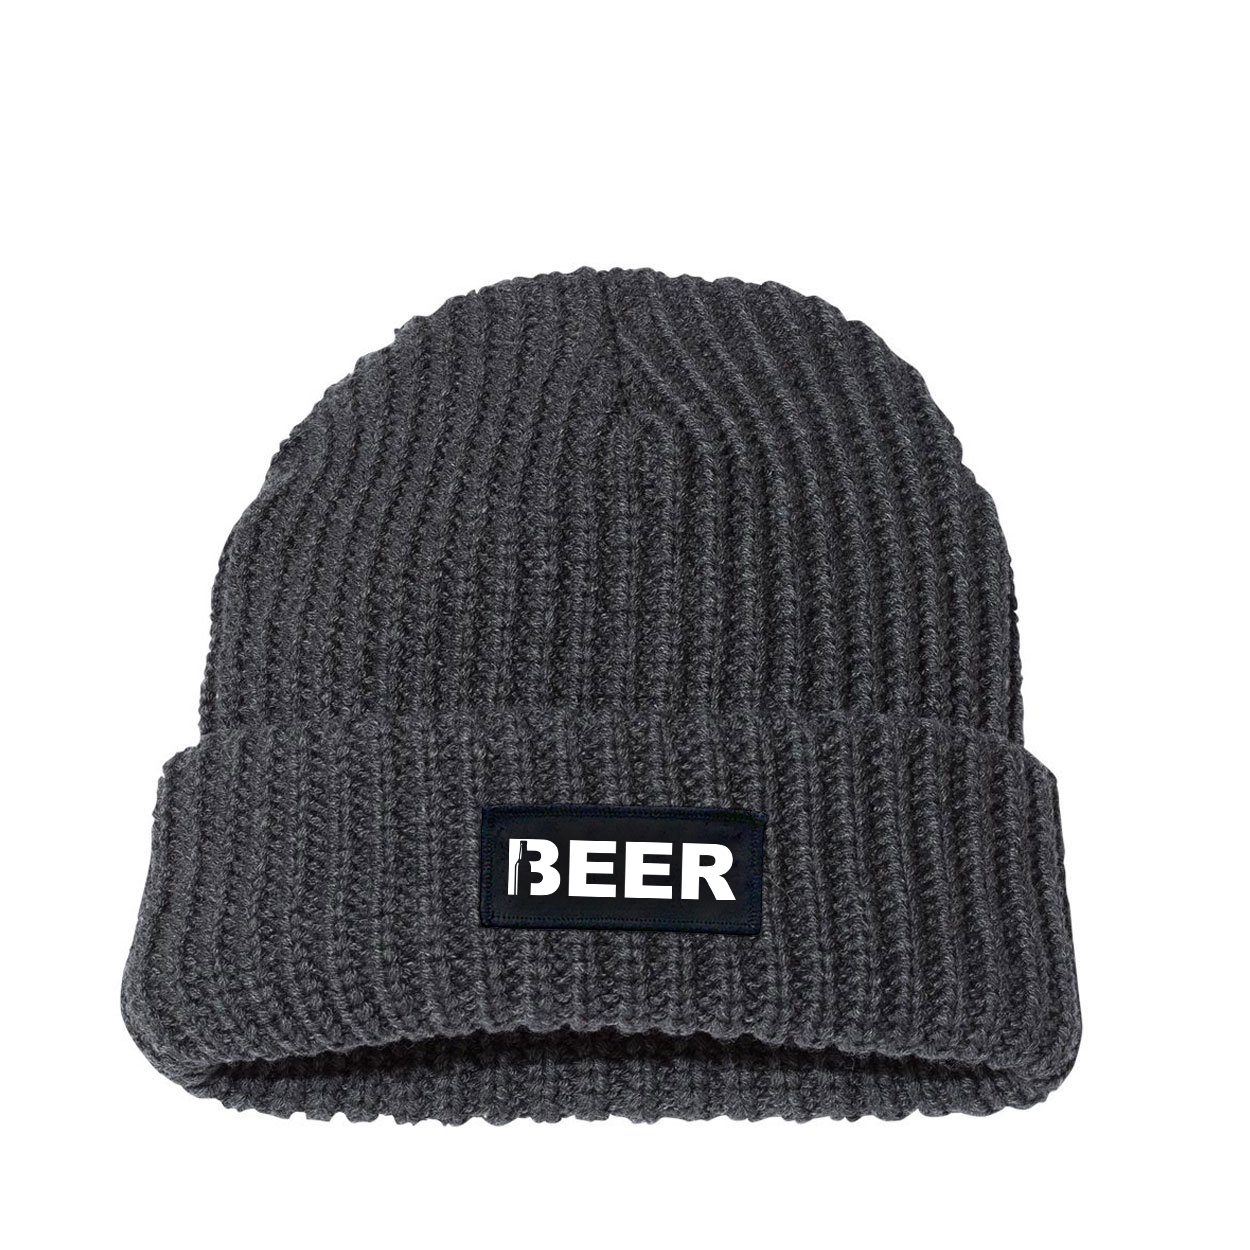 Beer Bottle Logo Night Out Woven Patch Roll Up Jumbo Chunky Knit Beanie Charcoal (White Logo)